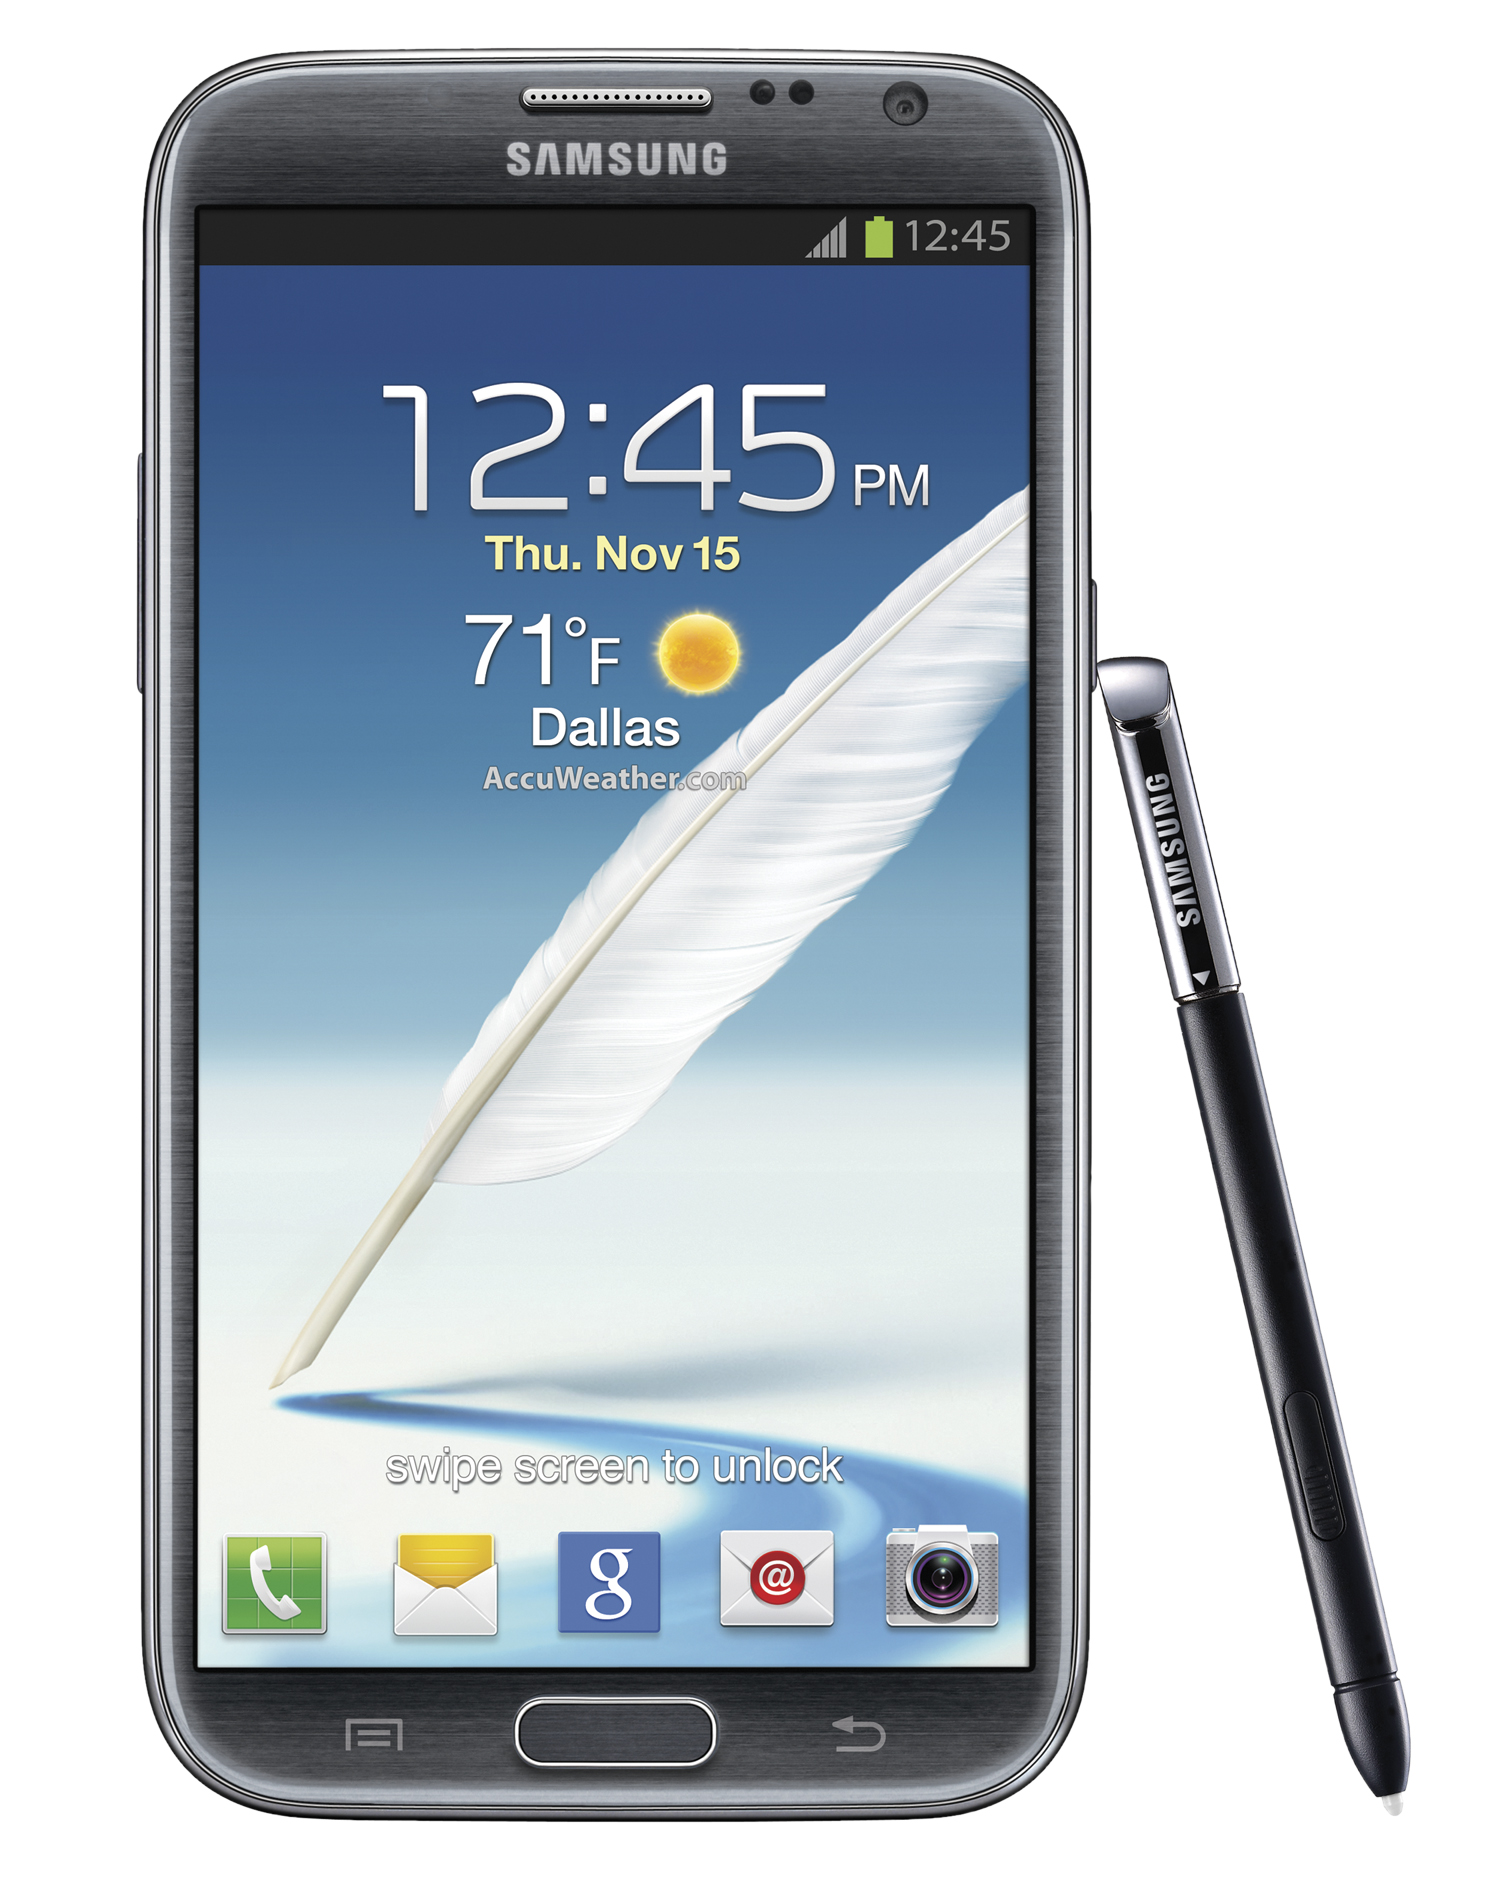 Samsung Galaxy Note II: Coming Soon